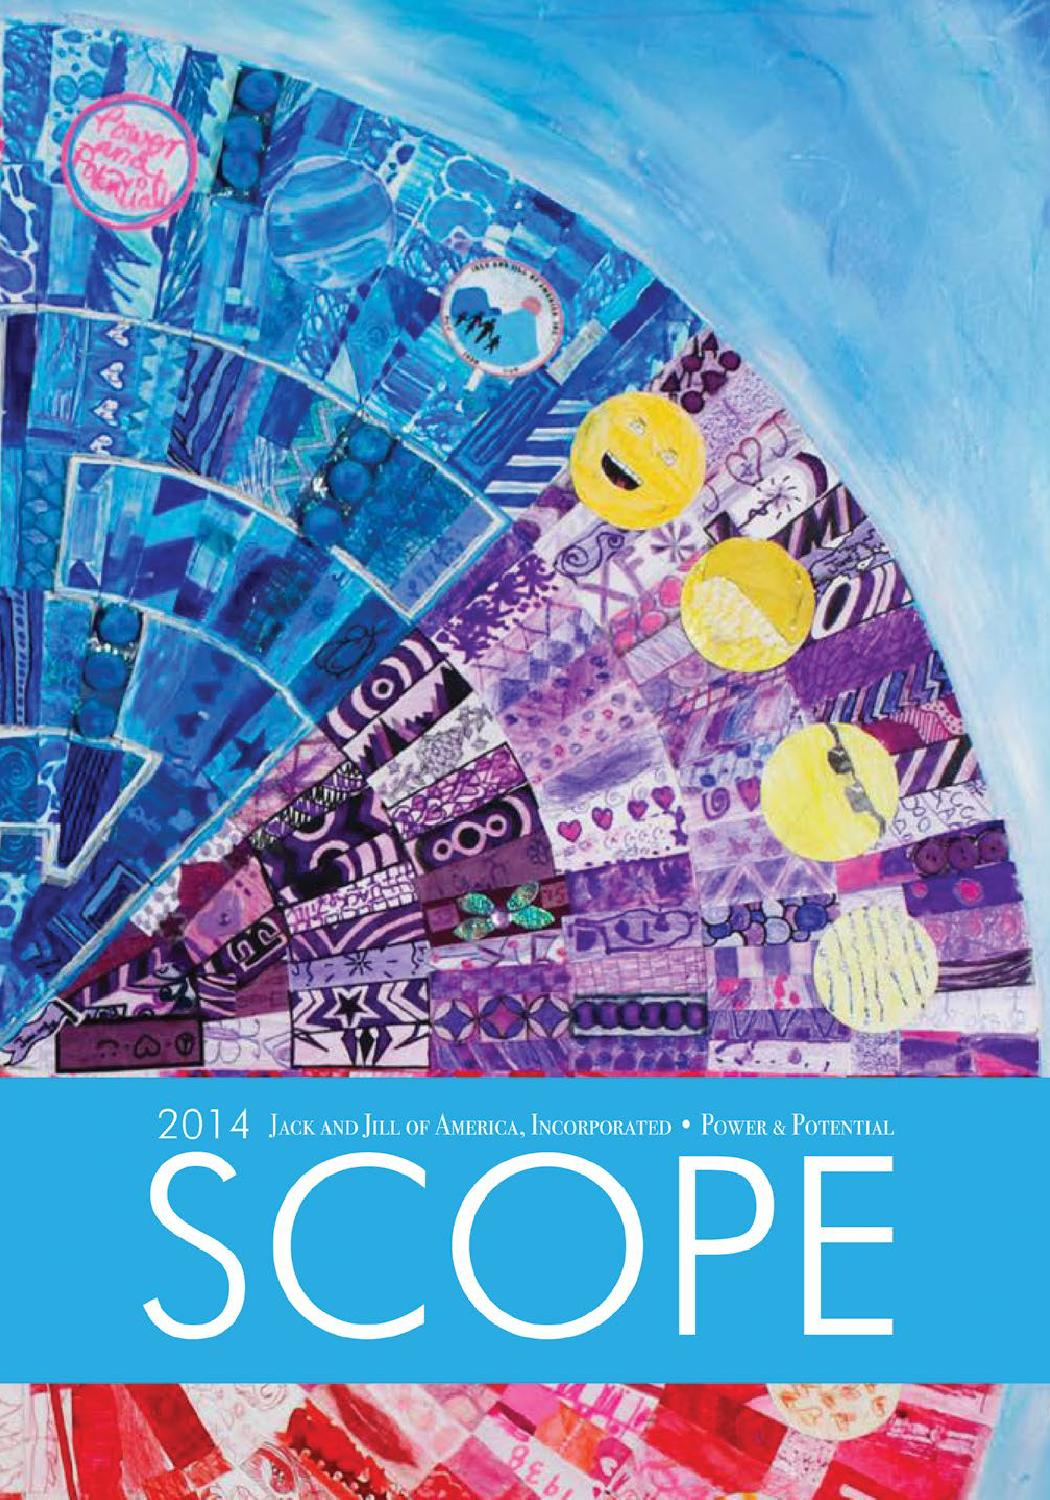 Scope 2014 by Jack and Jill of America 2340c54a1